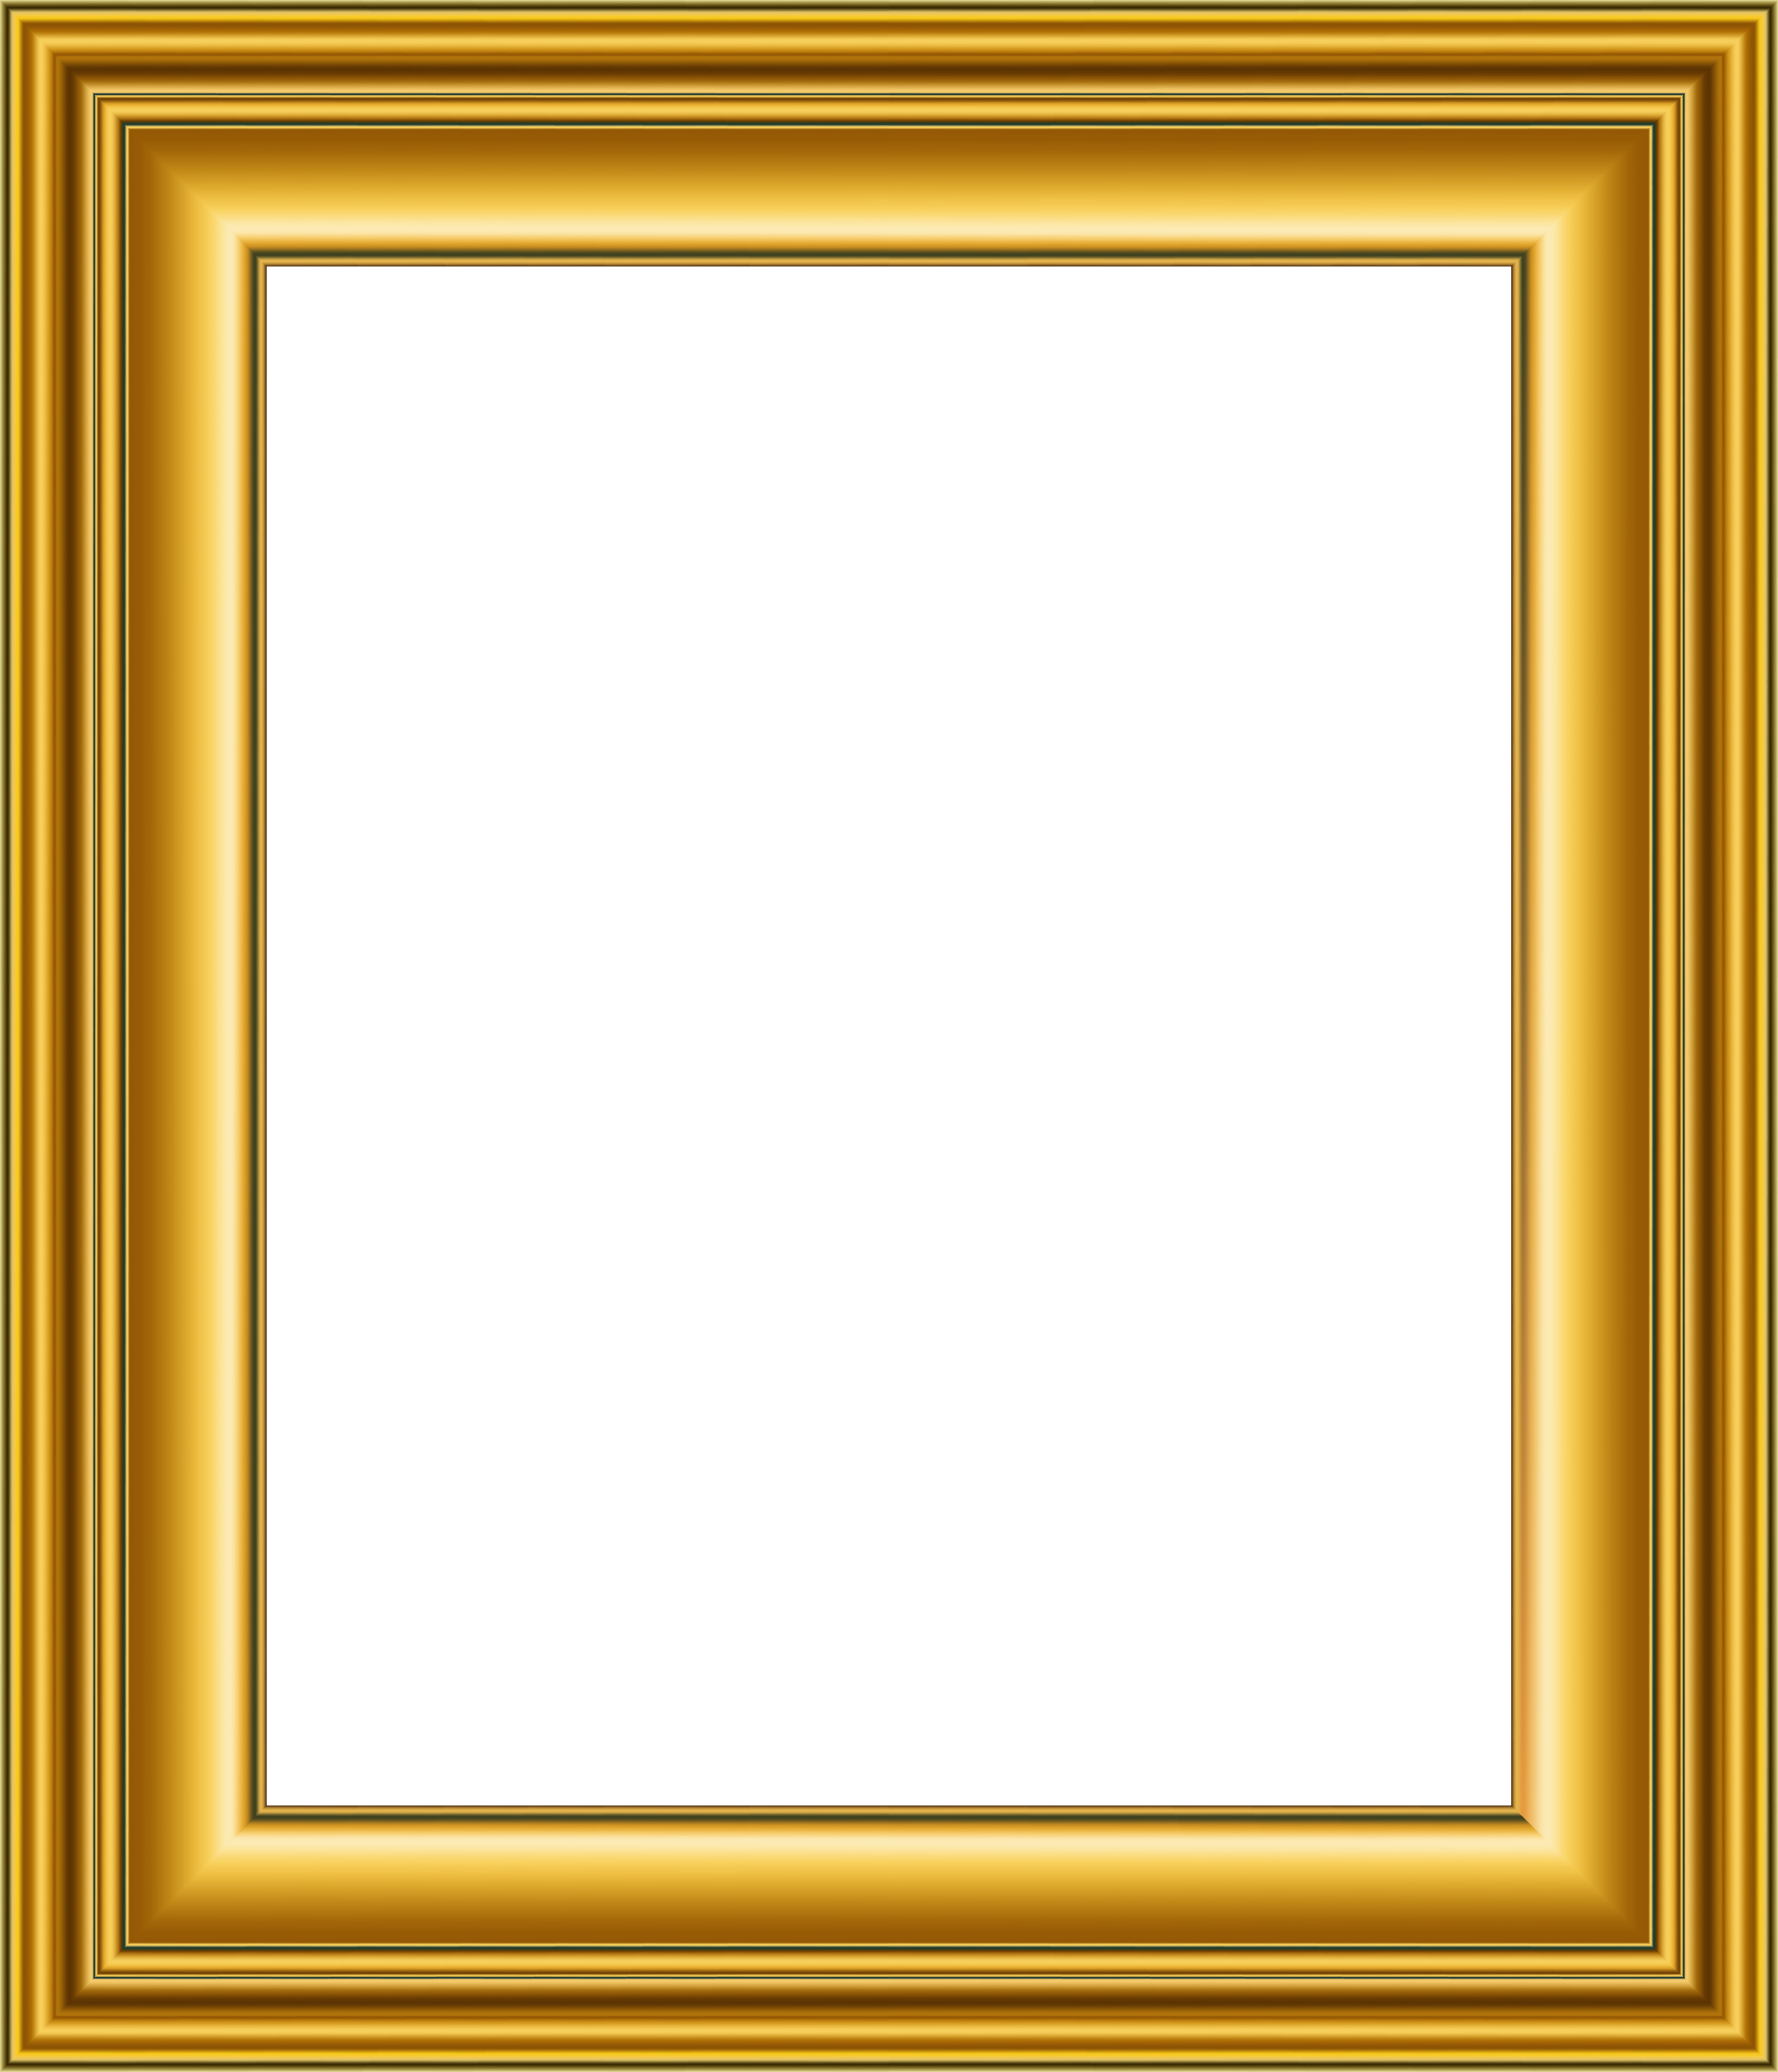 Old gold frame transparent. Square clipart photograph border